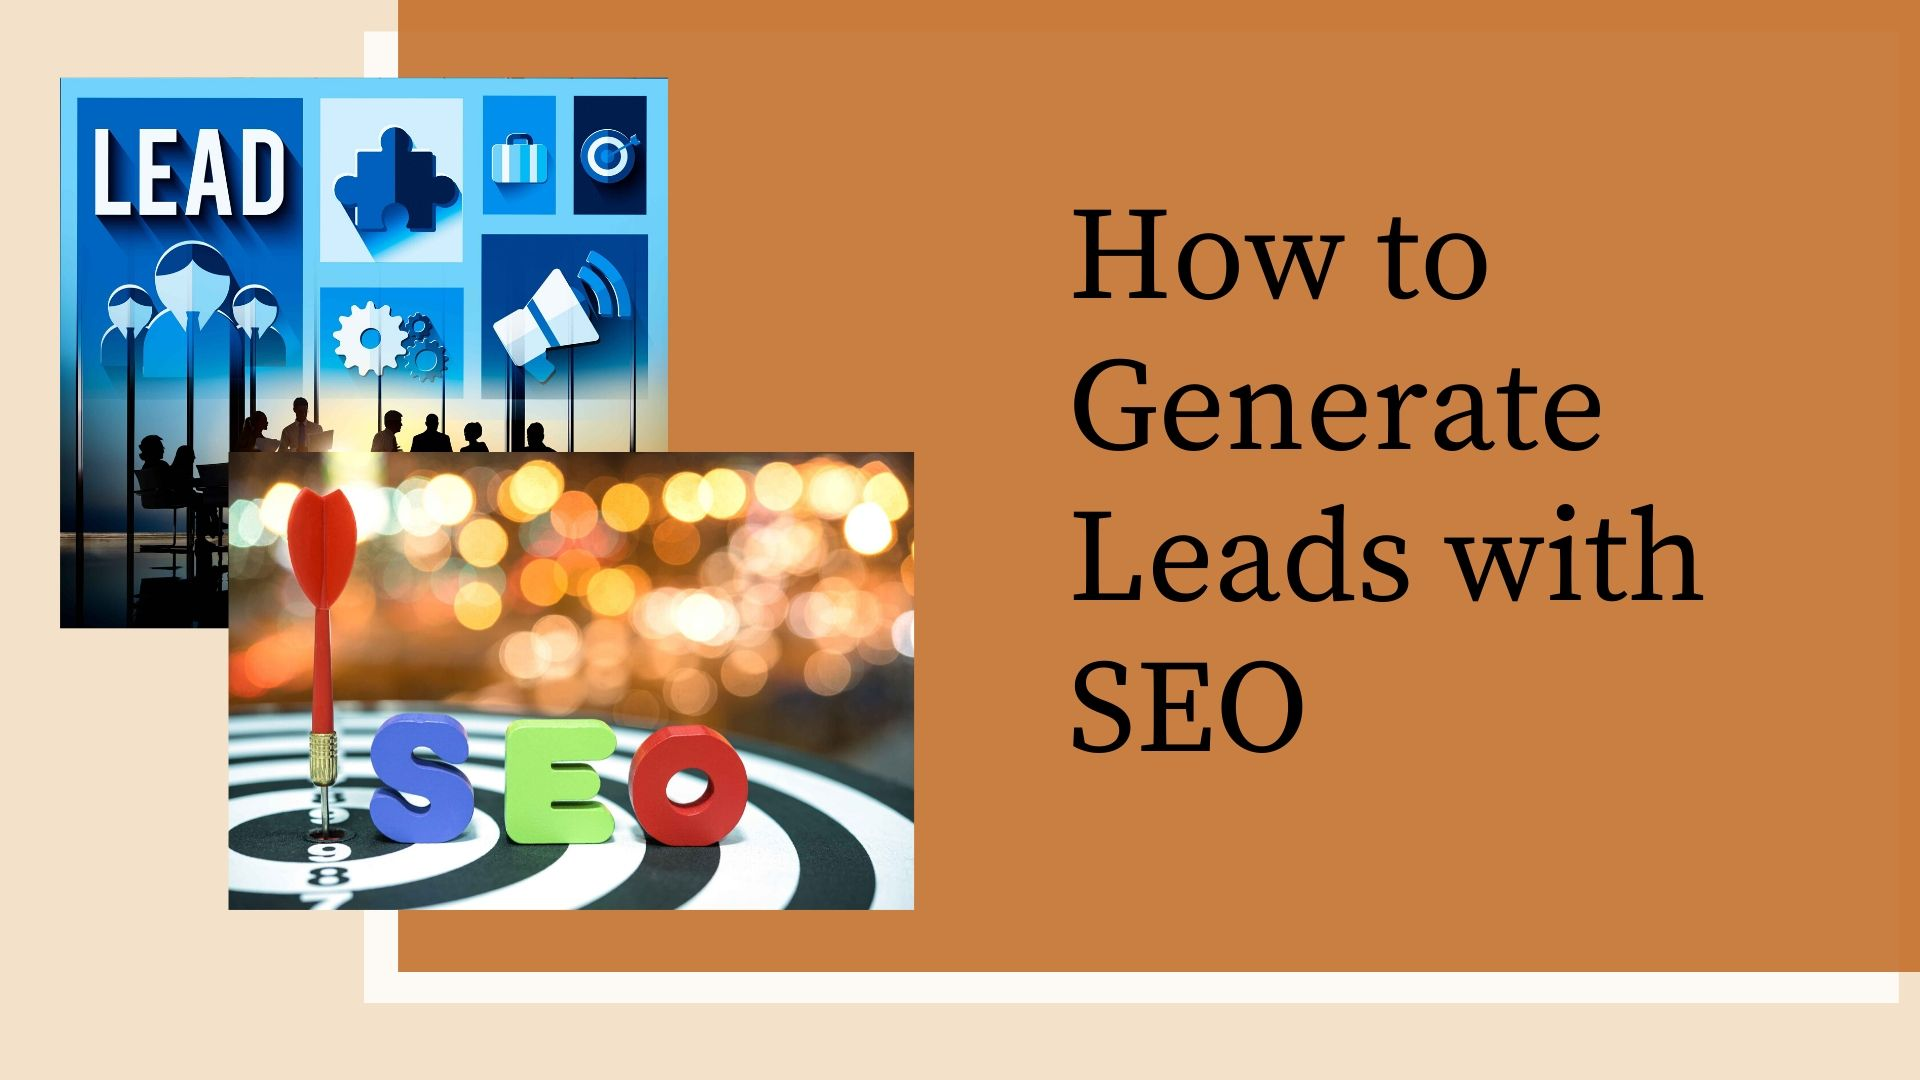 Lead with SEO